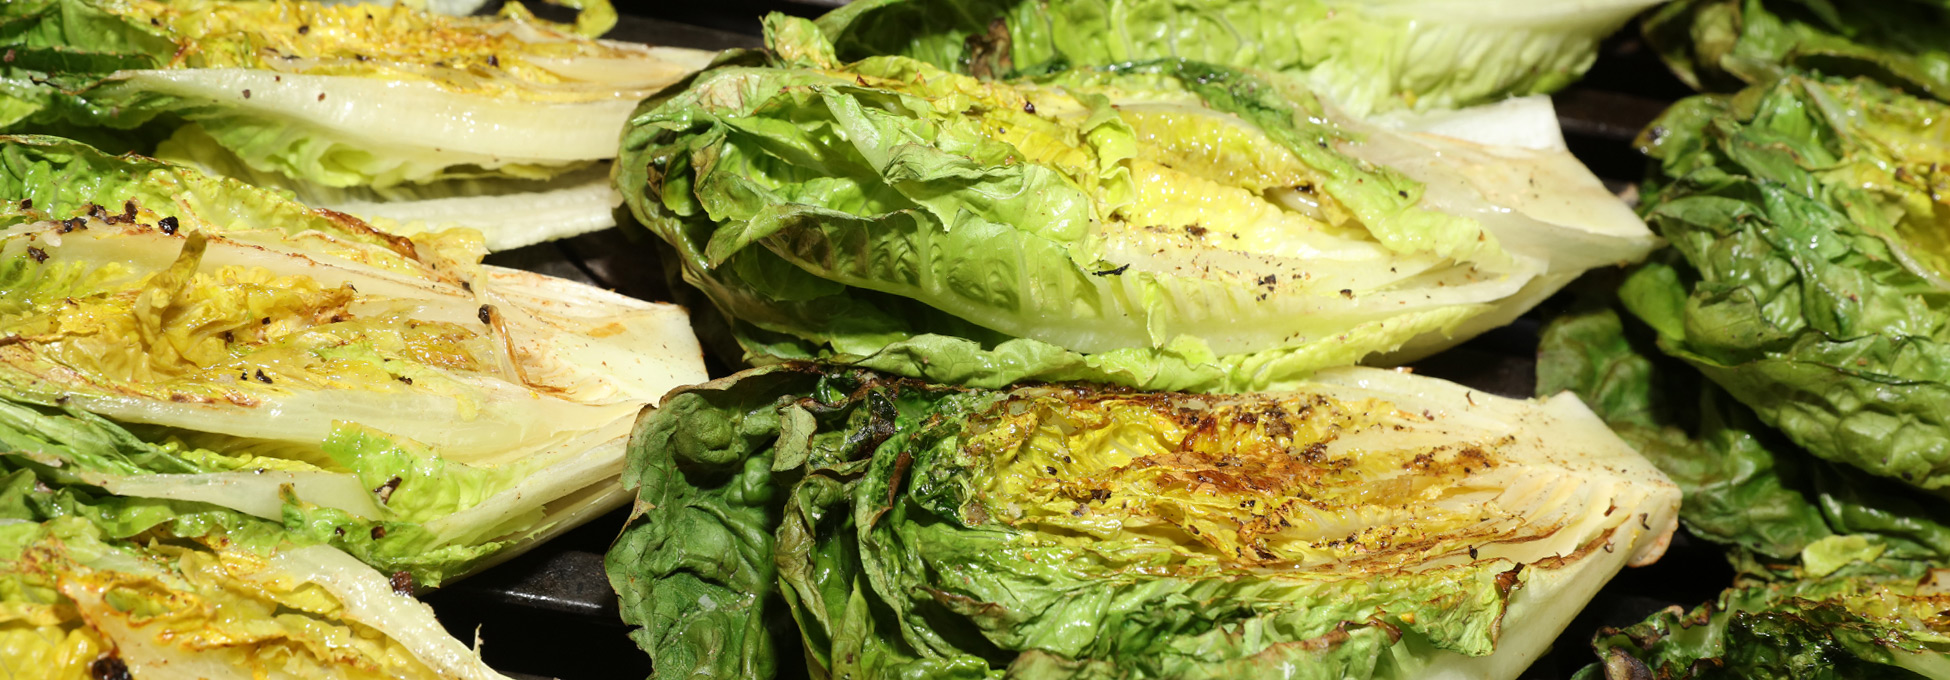 trigs-homepg-grilled-romaine-hearts.jpg